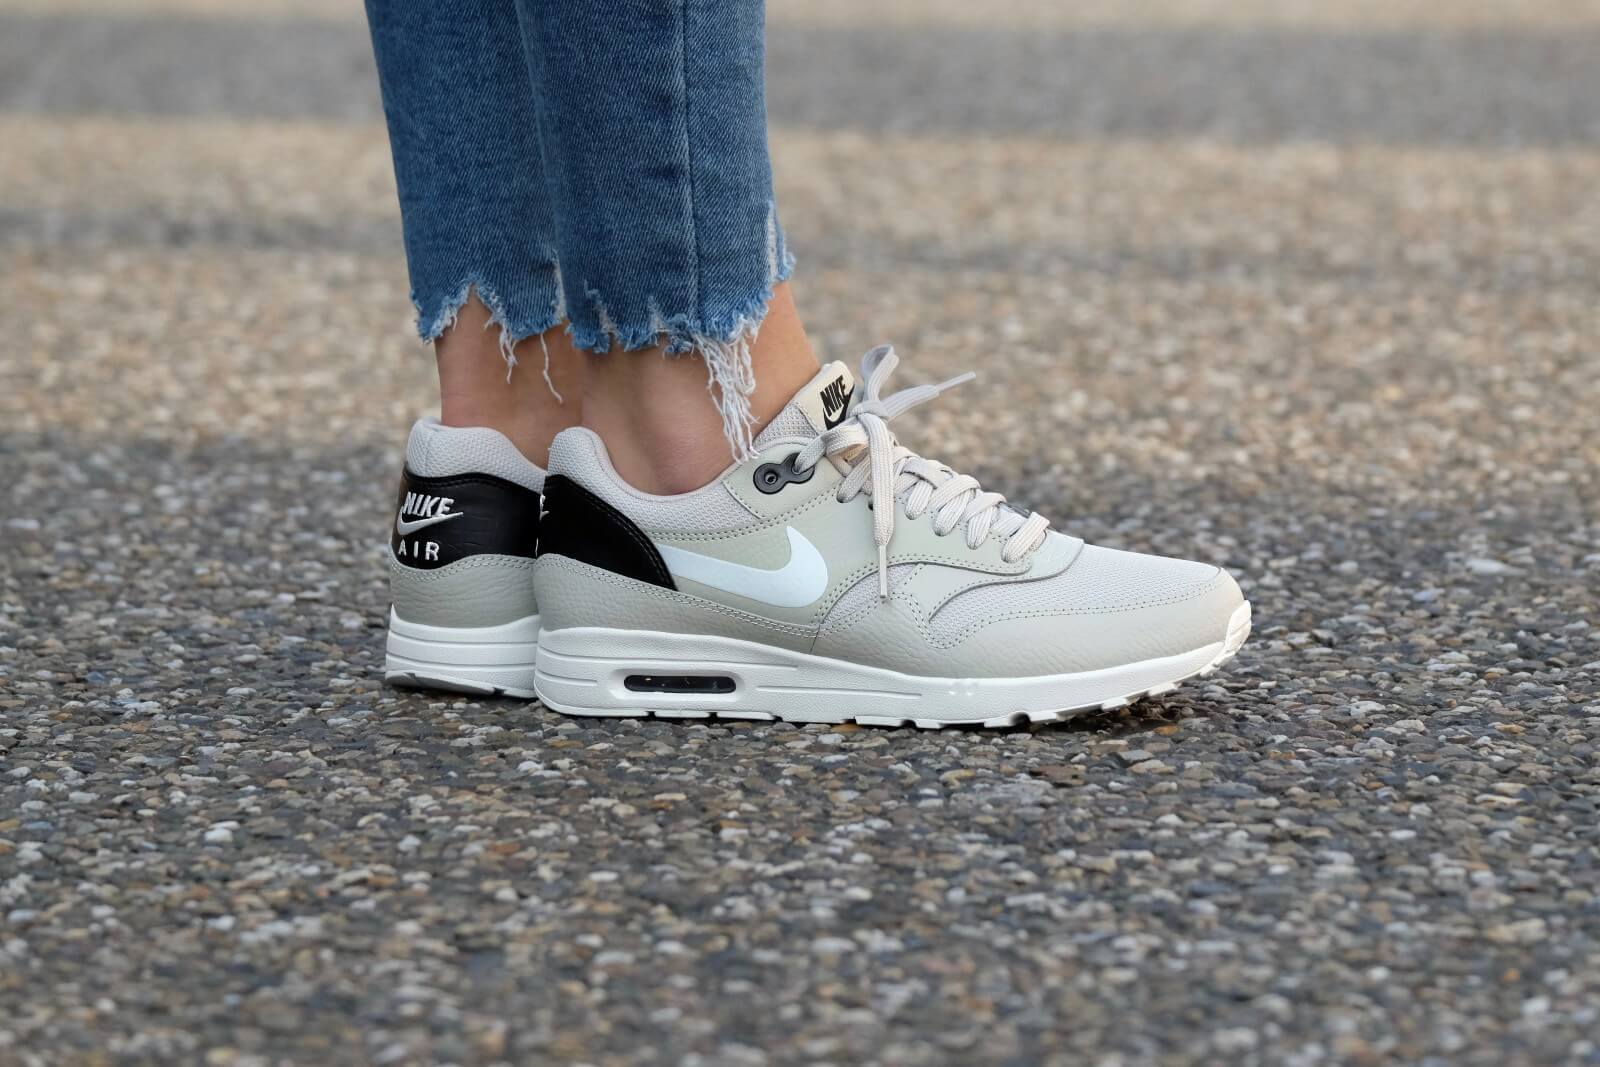 Nike WMNS Air Max 1 Ultra 2.0 Pale GreySummit White Black 881104 004